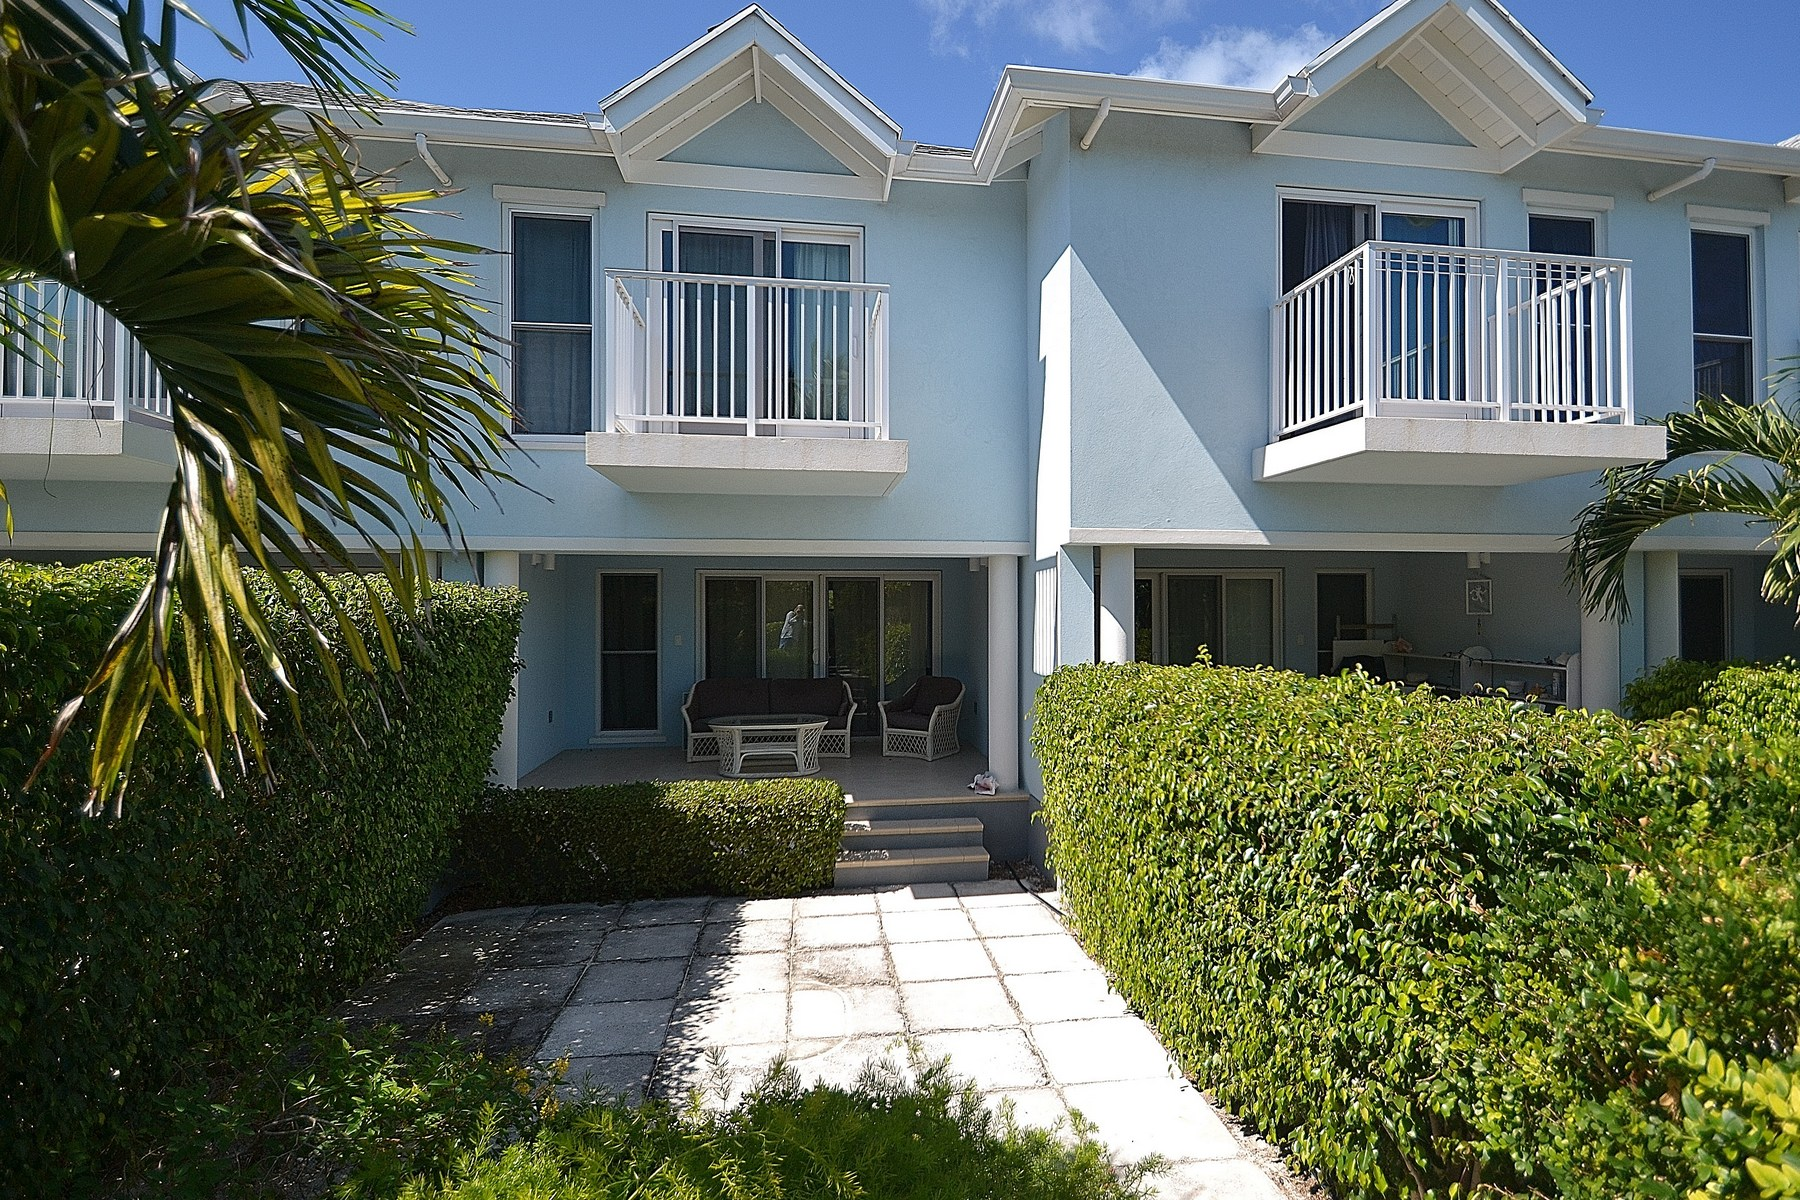 Townhouse for Sale at Seaflowers Townhome - Unit 21 Turtle Cove, Providenciales Turks And Caicos Islands